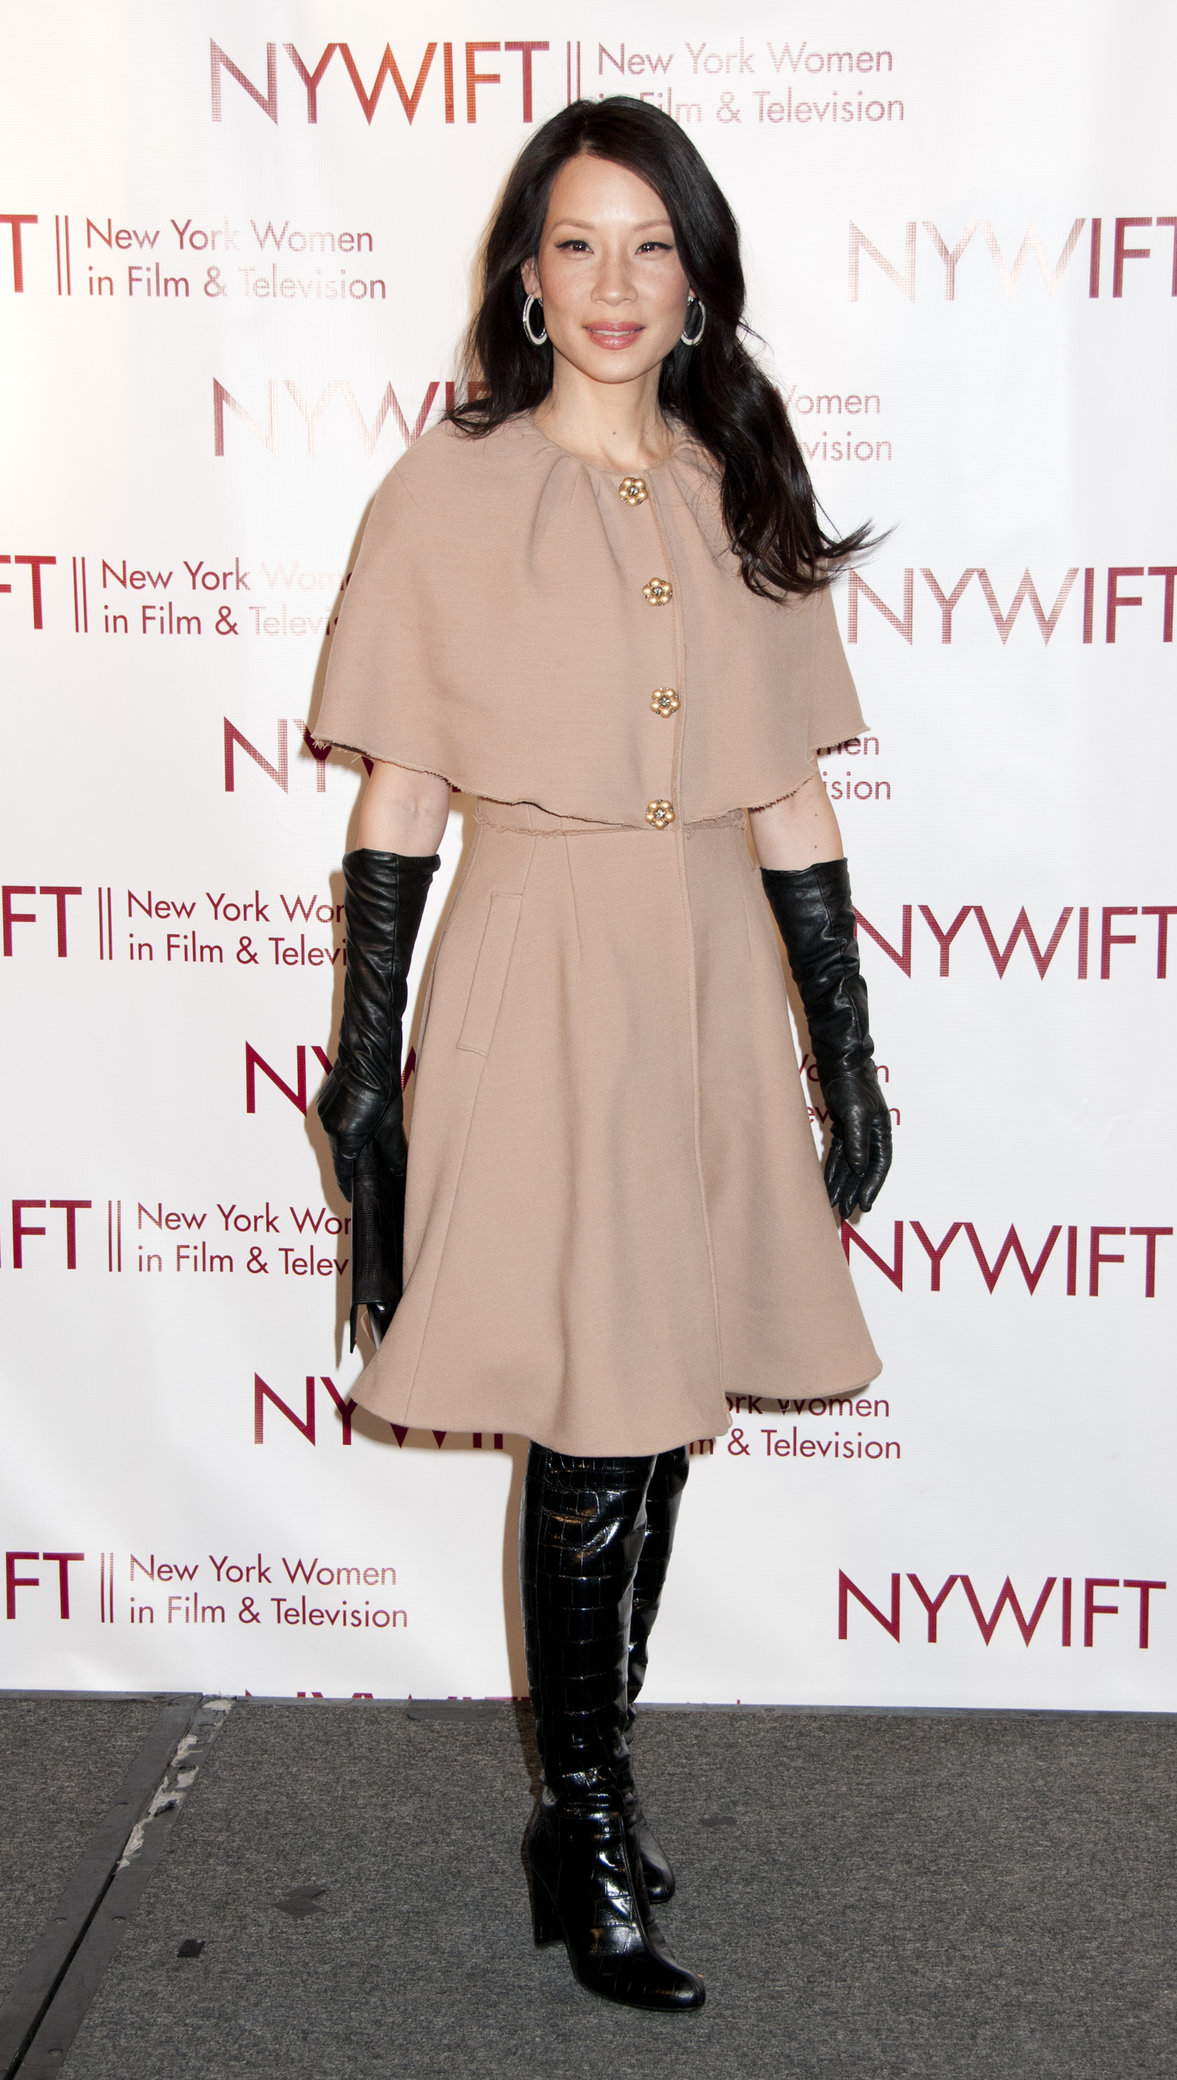 Lucy Liu NY Woman in Film and TV Muse Awards on December 13, 2012